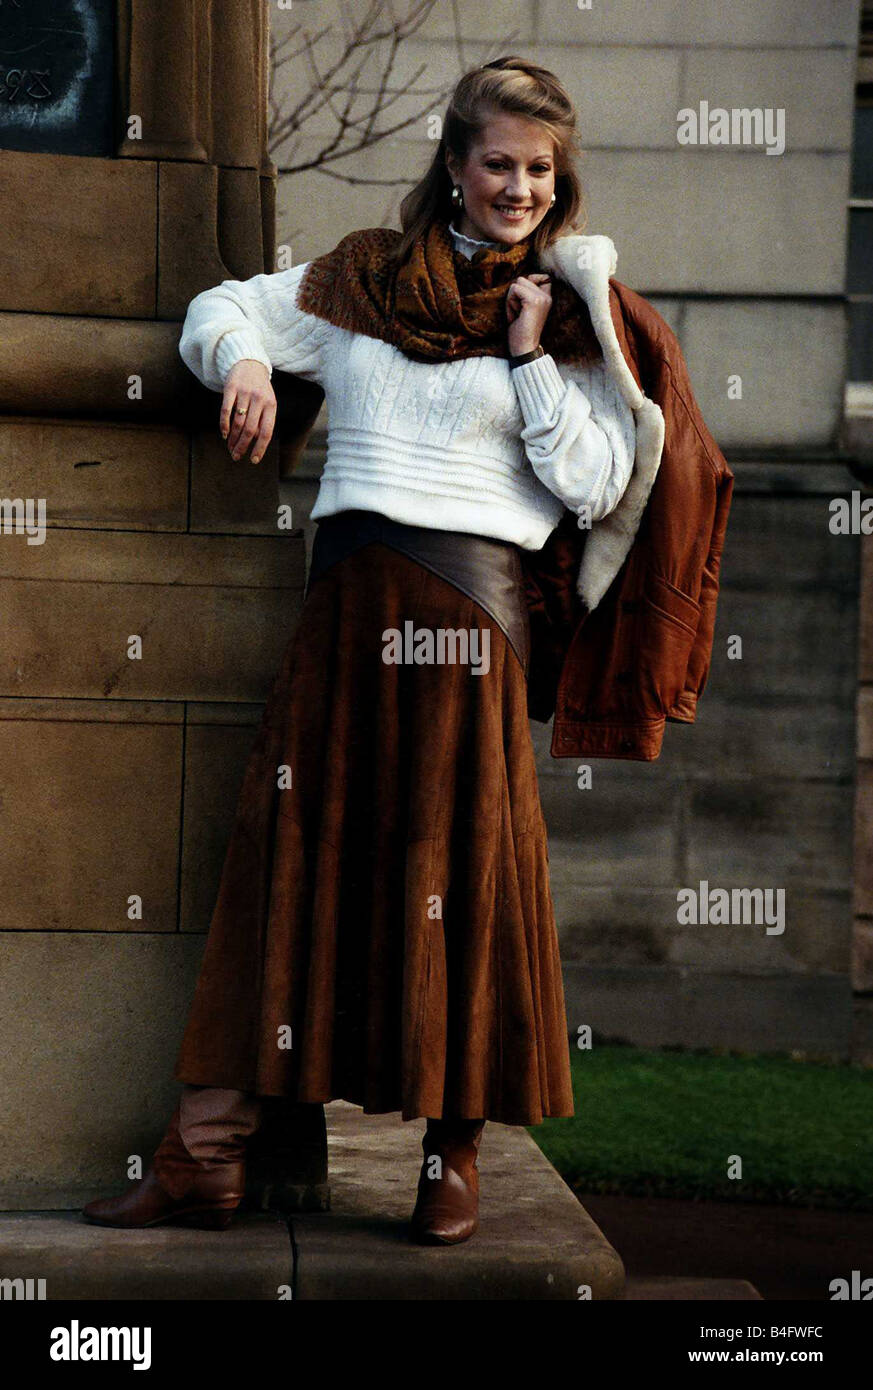 Suede Skirt Stock Photos & Suede Skirt Stock Images - Alamy